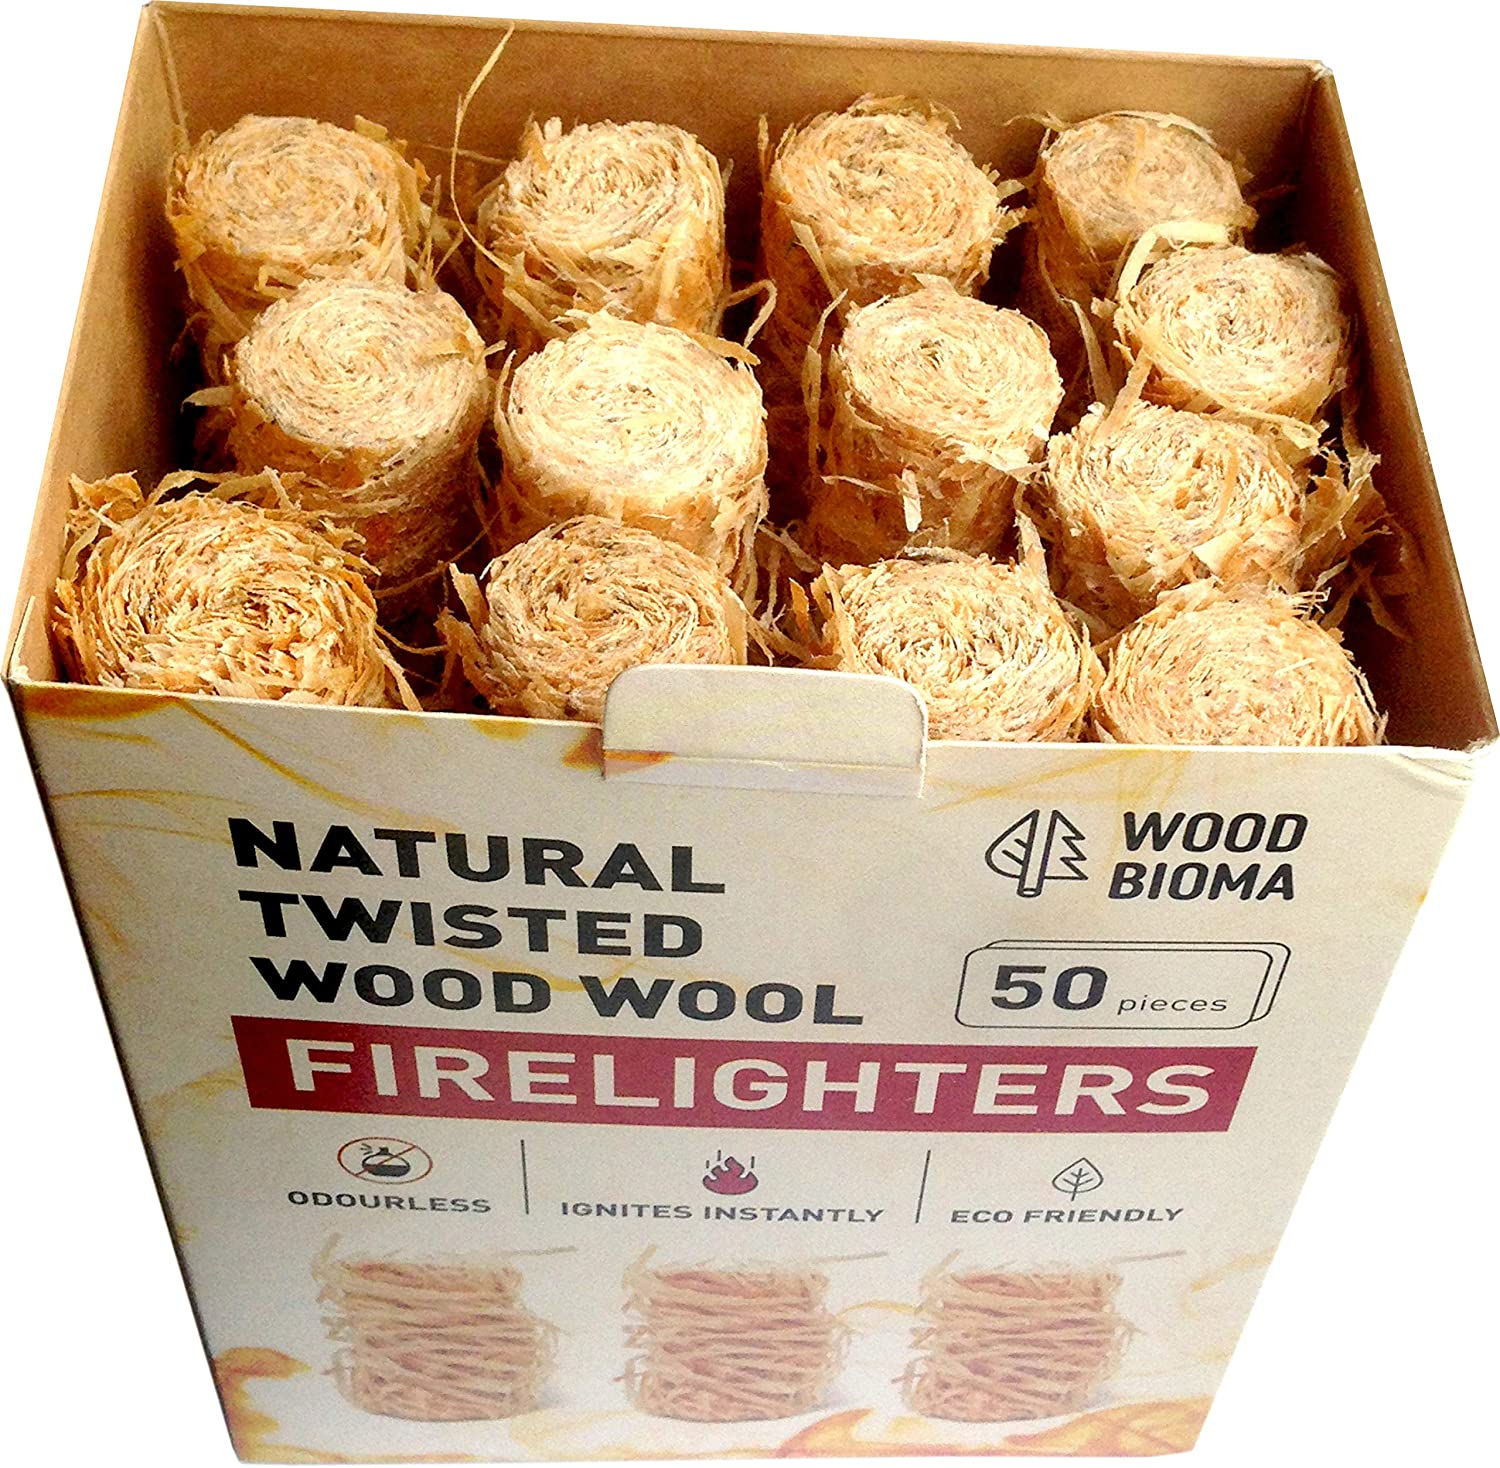 Natural Fire starter Wood Wool Firelighters 50 pcs Charcoal starter Duraflame Kamado Joe Big Green Egg Kindle Fire Fireplace Primo Smoker BBQ Pizza oven, by Woodbioma